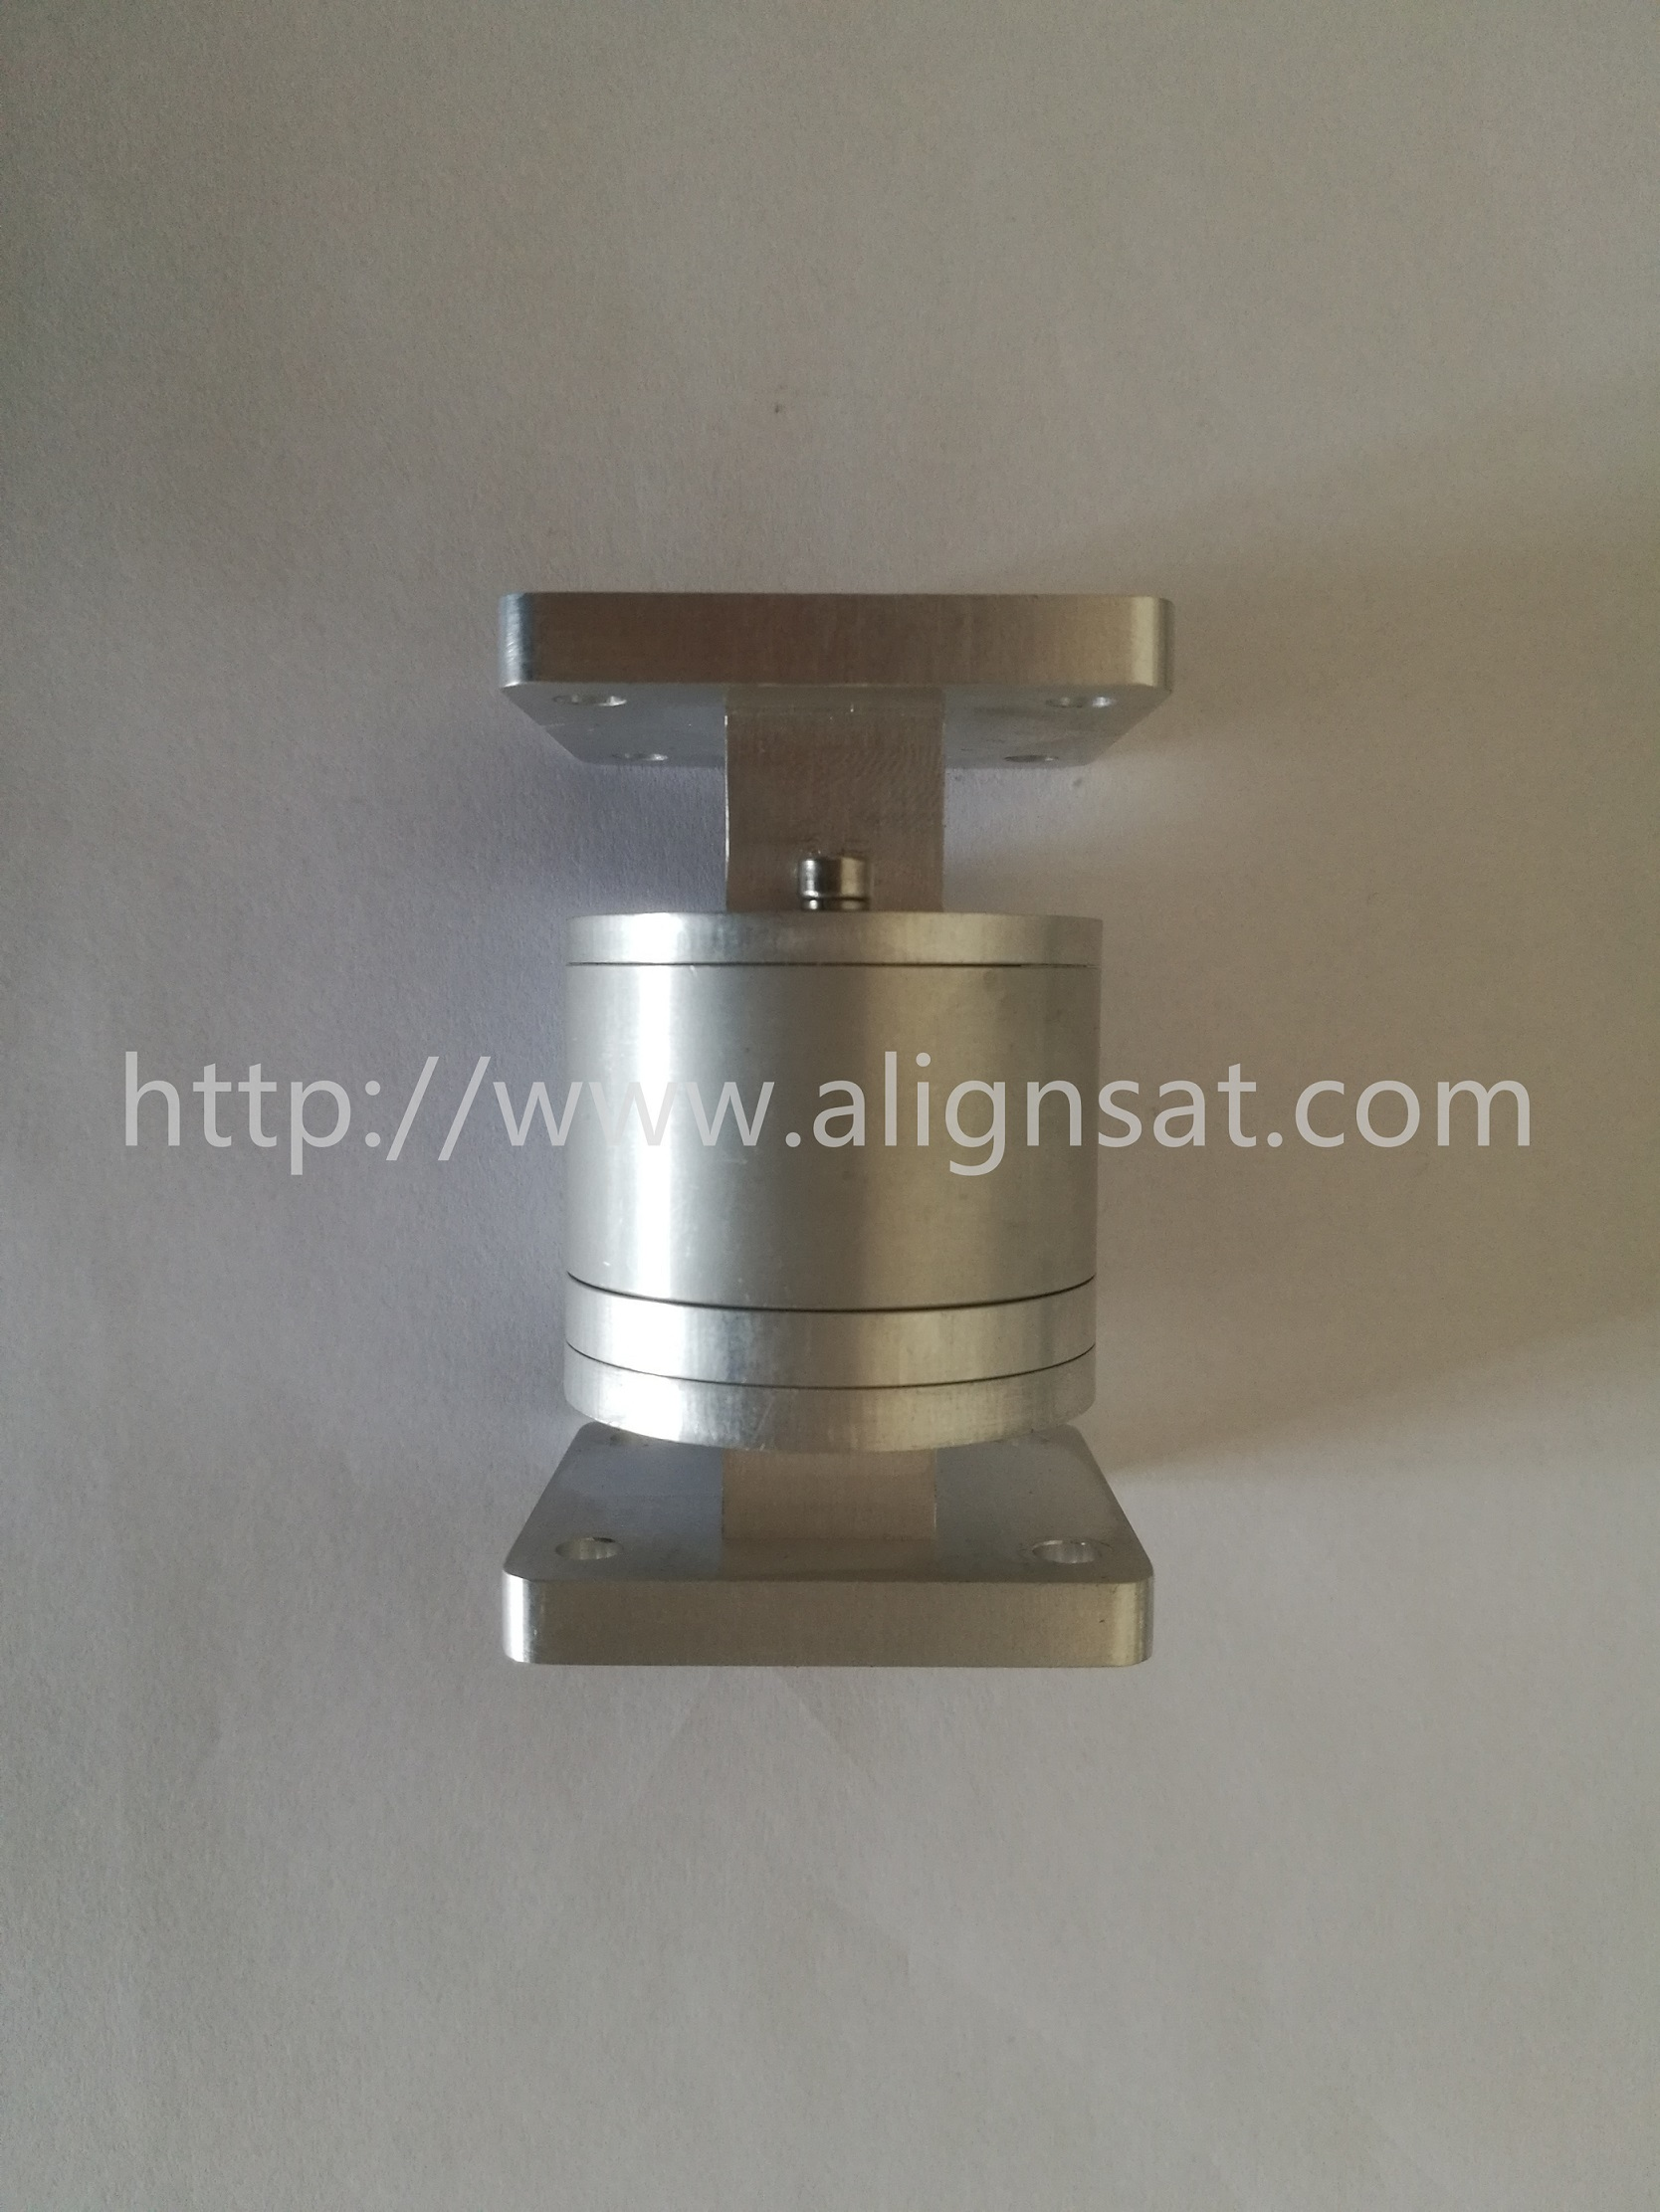 Alignsat Waveguide Rotary Joints